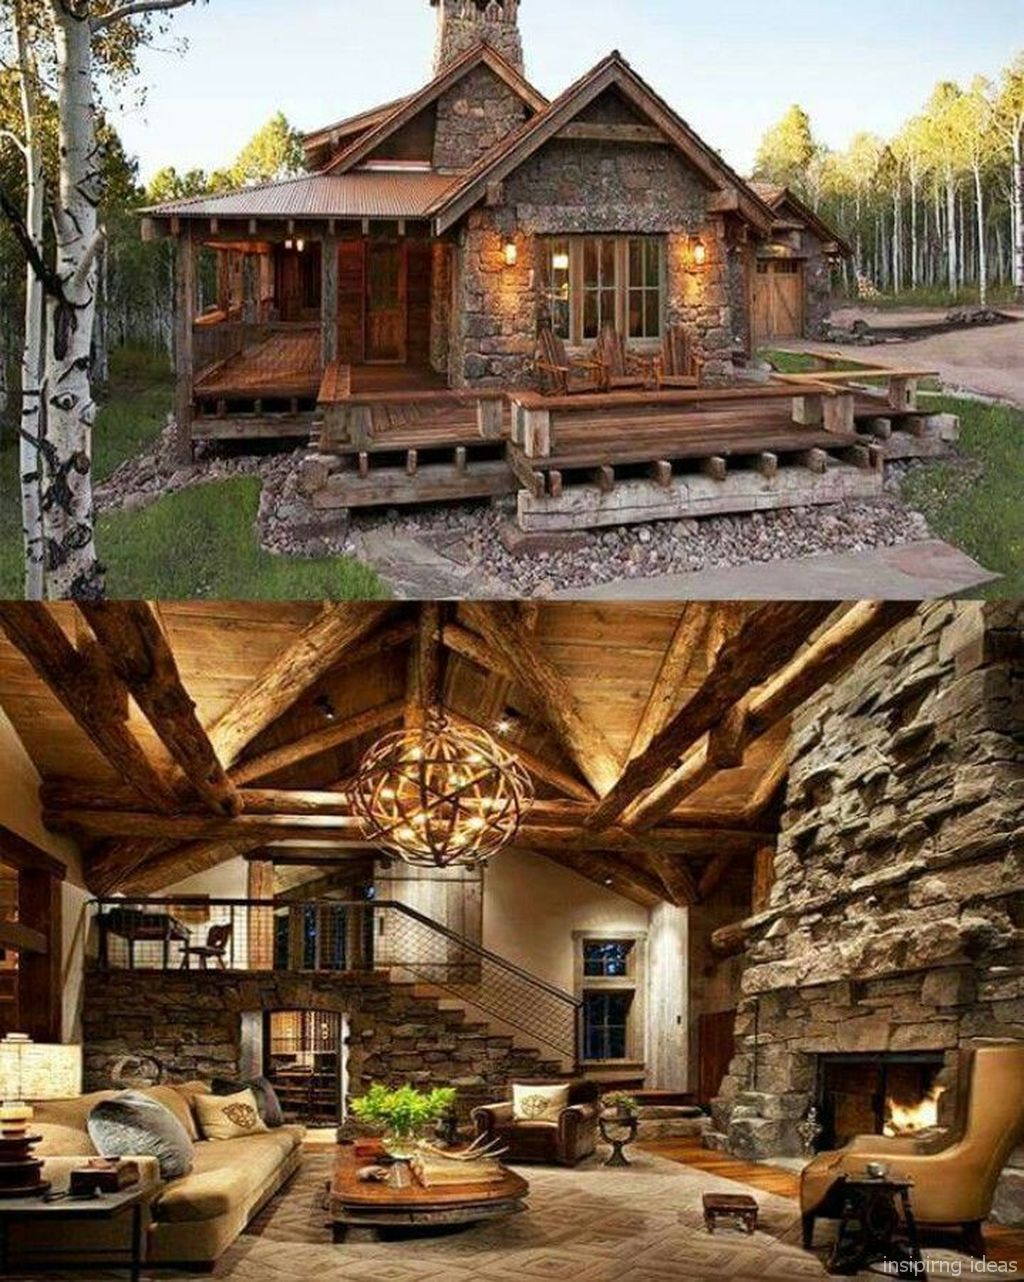 Pin By Elin Bjorsvik On Chalet/Timber/Log/Stone/Barn Homes